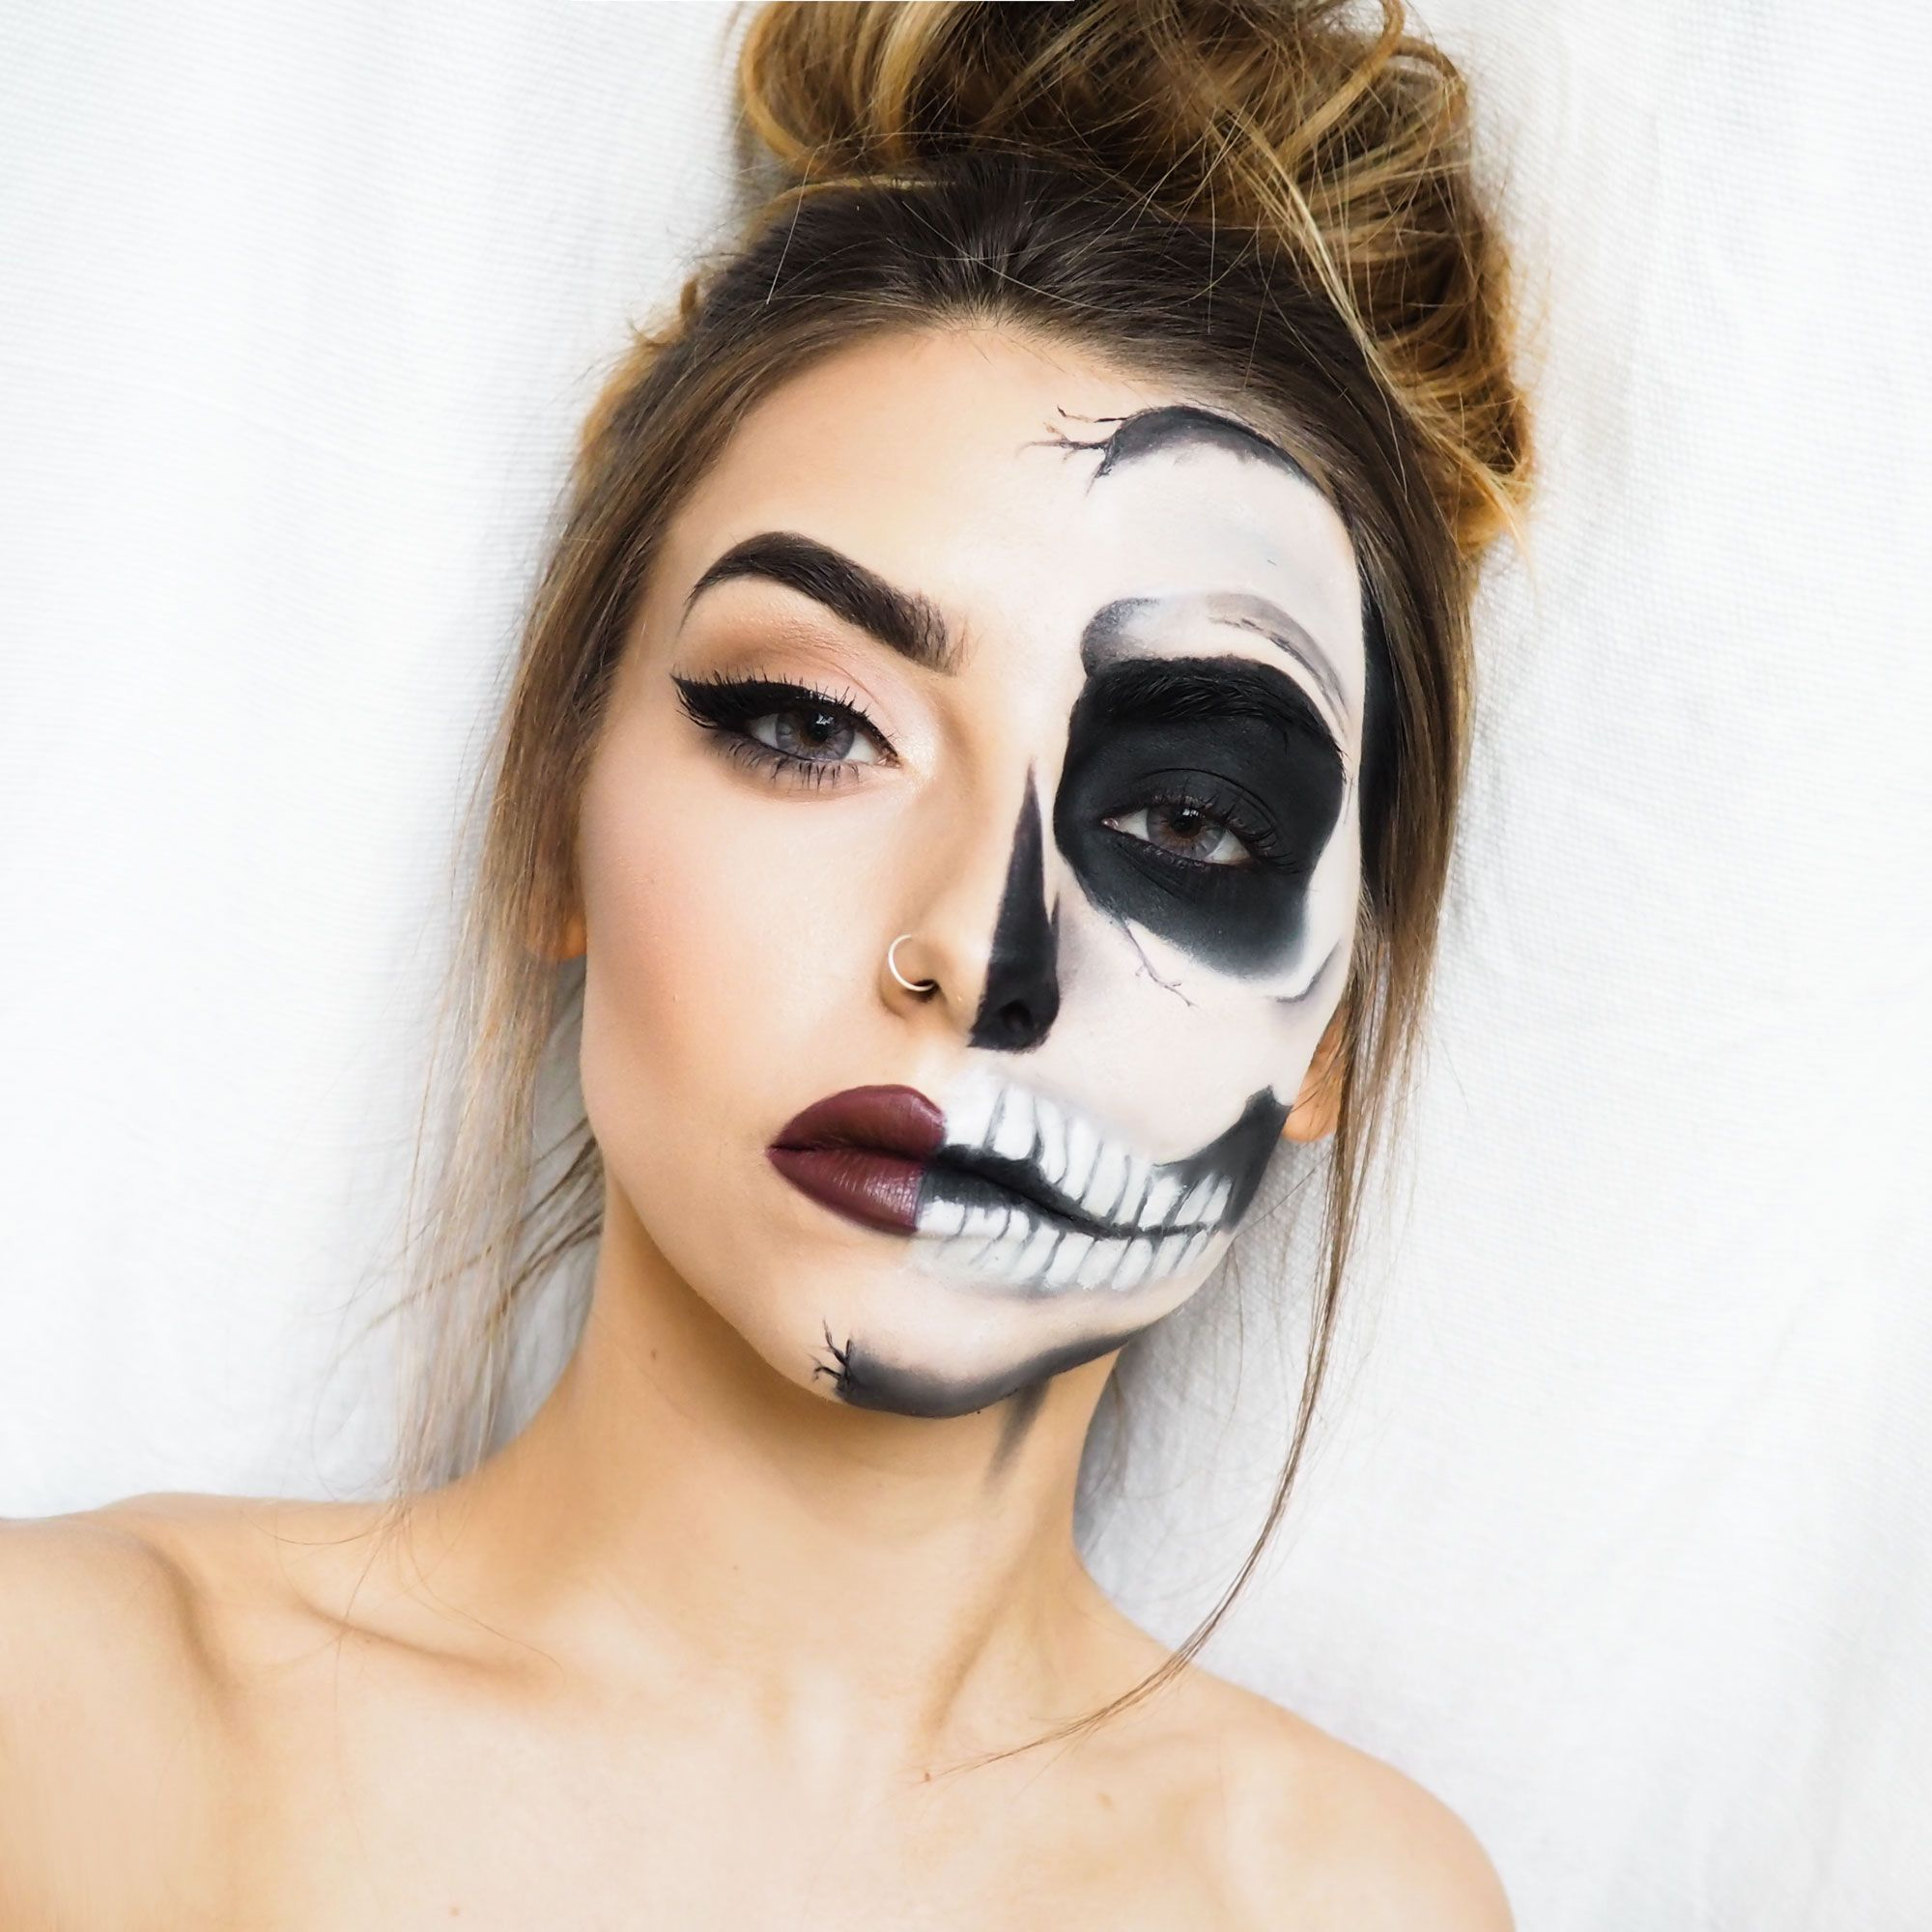 half skull halloween makeup tutorial cocochicblog halloween makeup ideas pinterest half. Black Bedroom Furniture Sets. Home Design Ideas